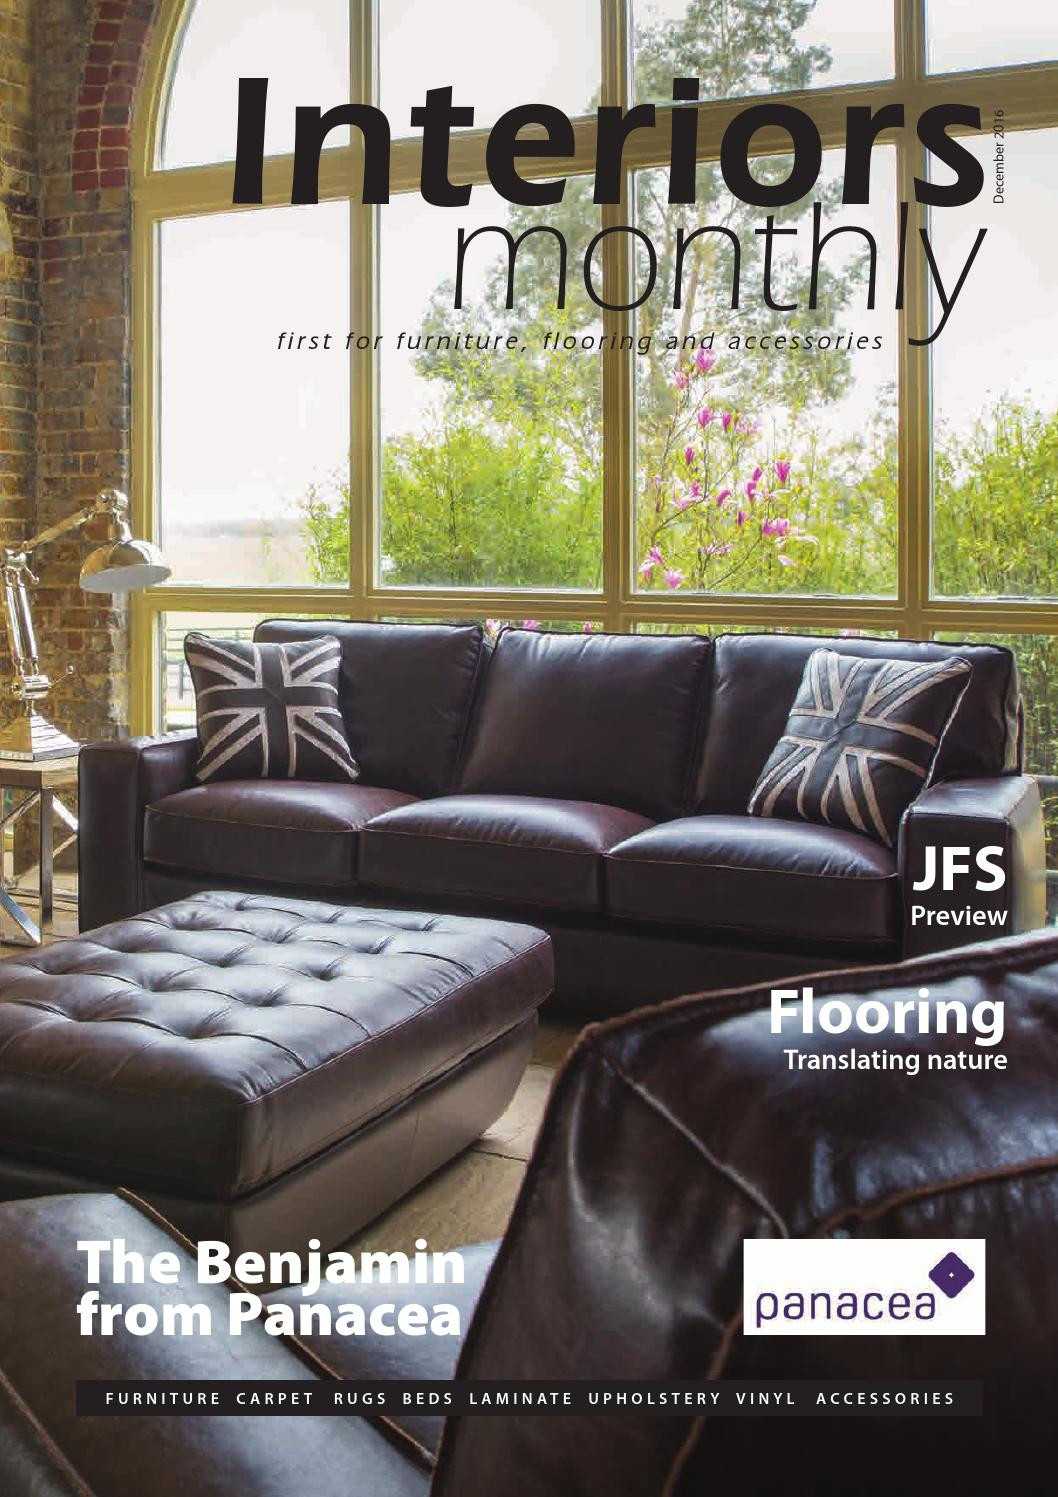 Kahrs Hardwood Flooring Distributors Of Interiors Monthly December by Joanne Paull issuu In Page 1